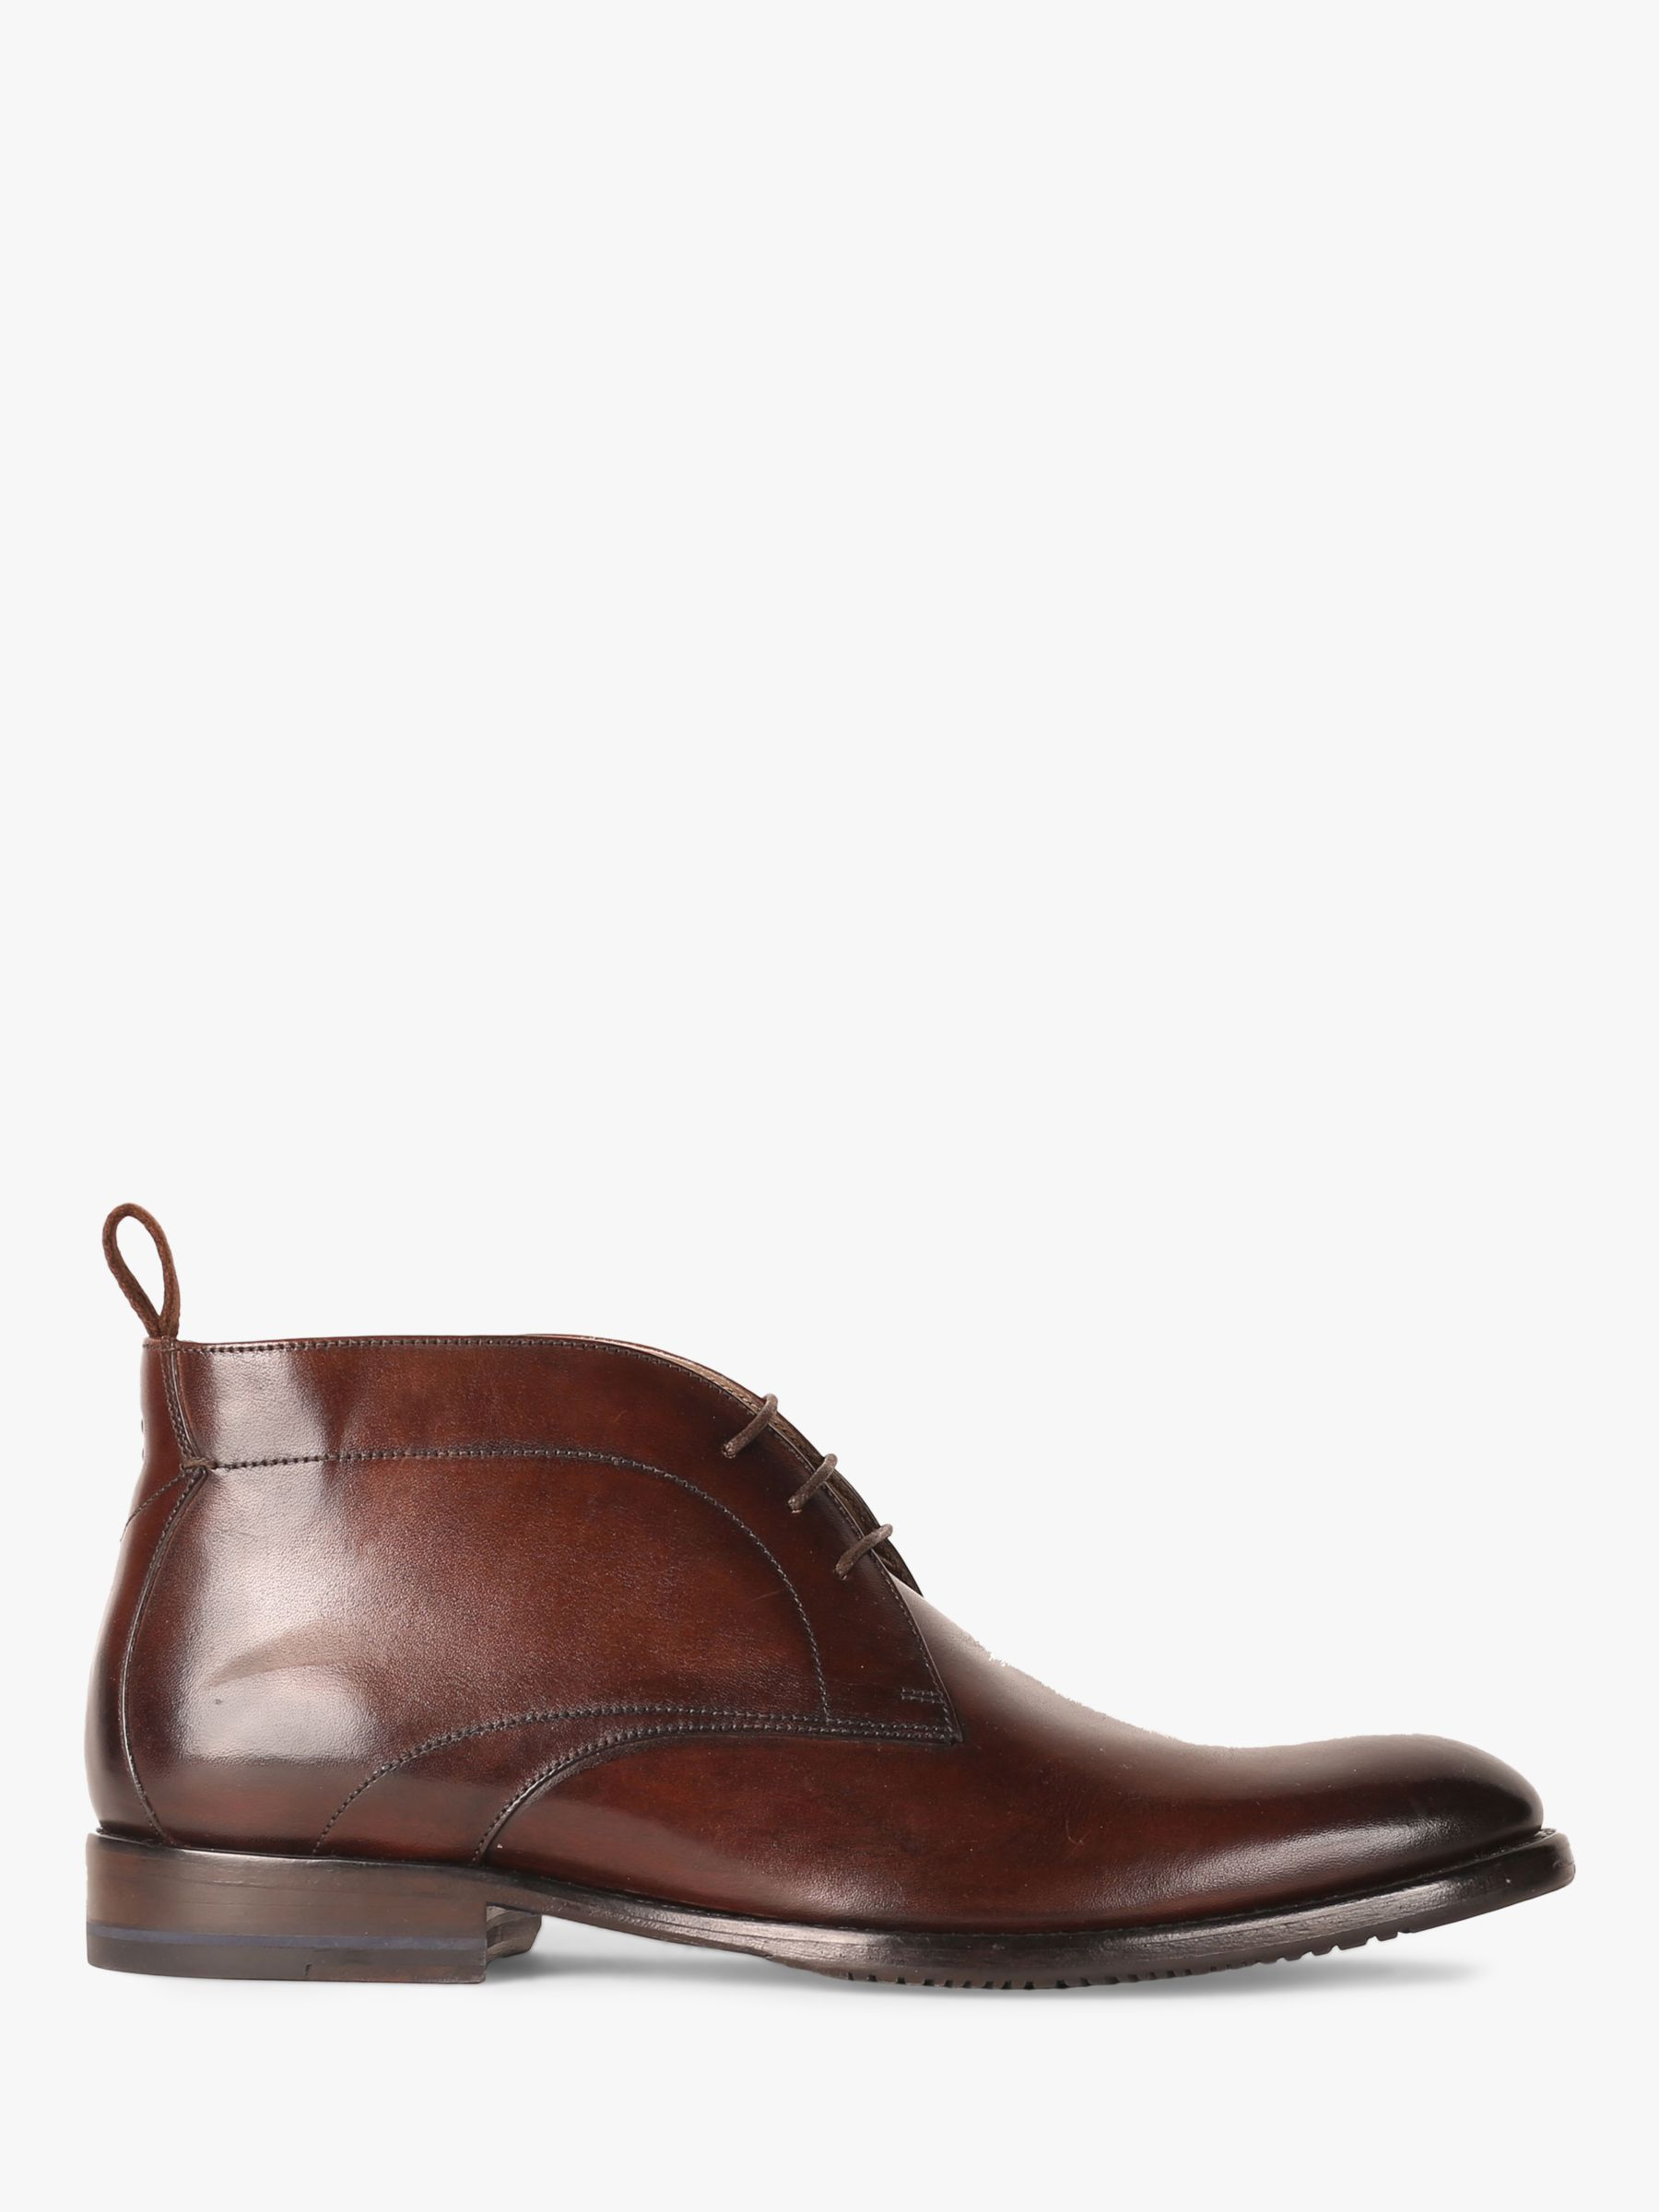 Oliver Sweeney Oliver Sweeney Farleton Leather Chukka Boots, Brown